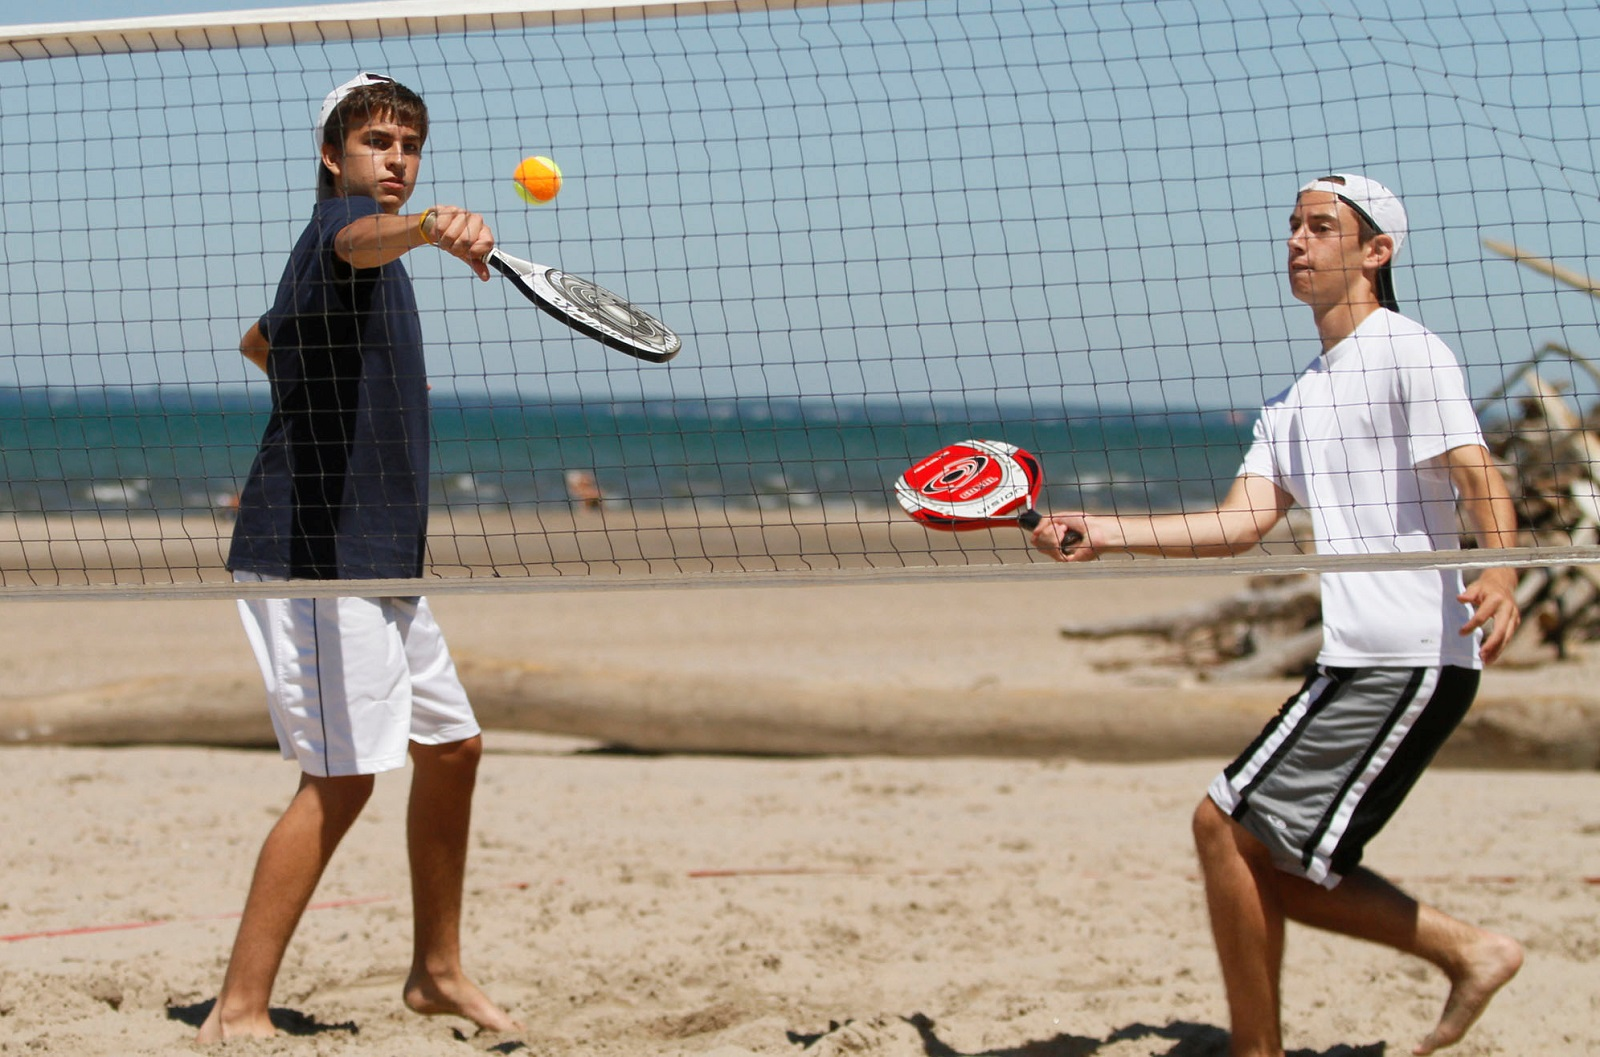 Zach Gabryel, left, hits a ball as Dominic Eusanio looks on in beach tennis at Woodlawn Beach State Park in 2010. (John Hickey/Buffalo News file photo)